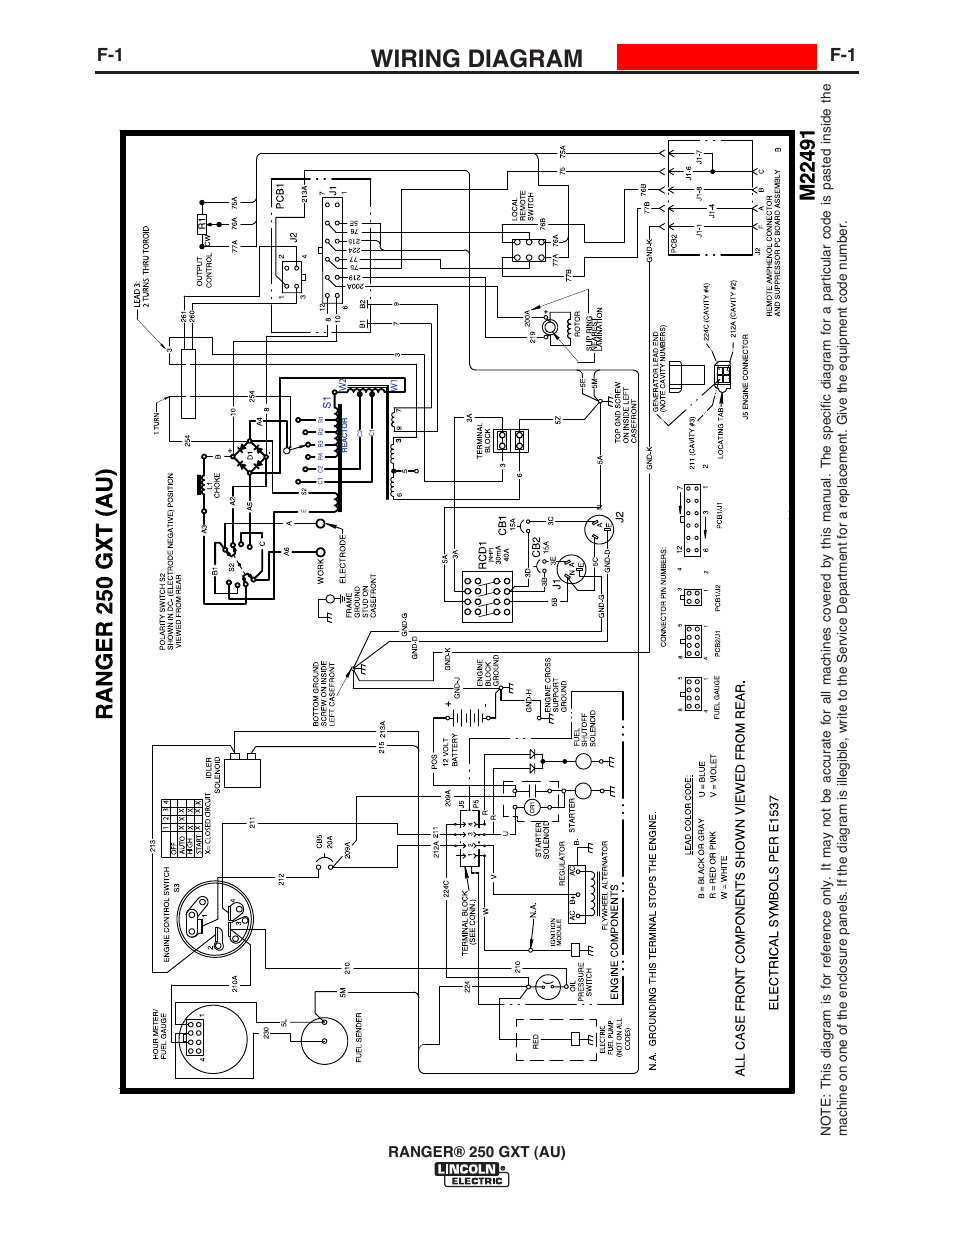 wiring diagram lincoln electric im10052 ranger 250 gxt (au) user HVAC Schematic 1997 Lincoln Continental wiring diagram lincoln electric im10052 ranger 250 gxt (au) user manual page 28 56